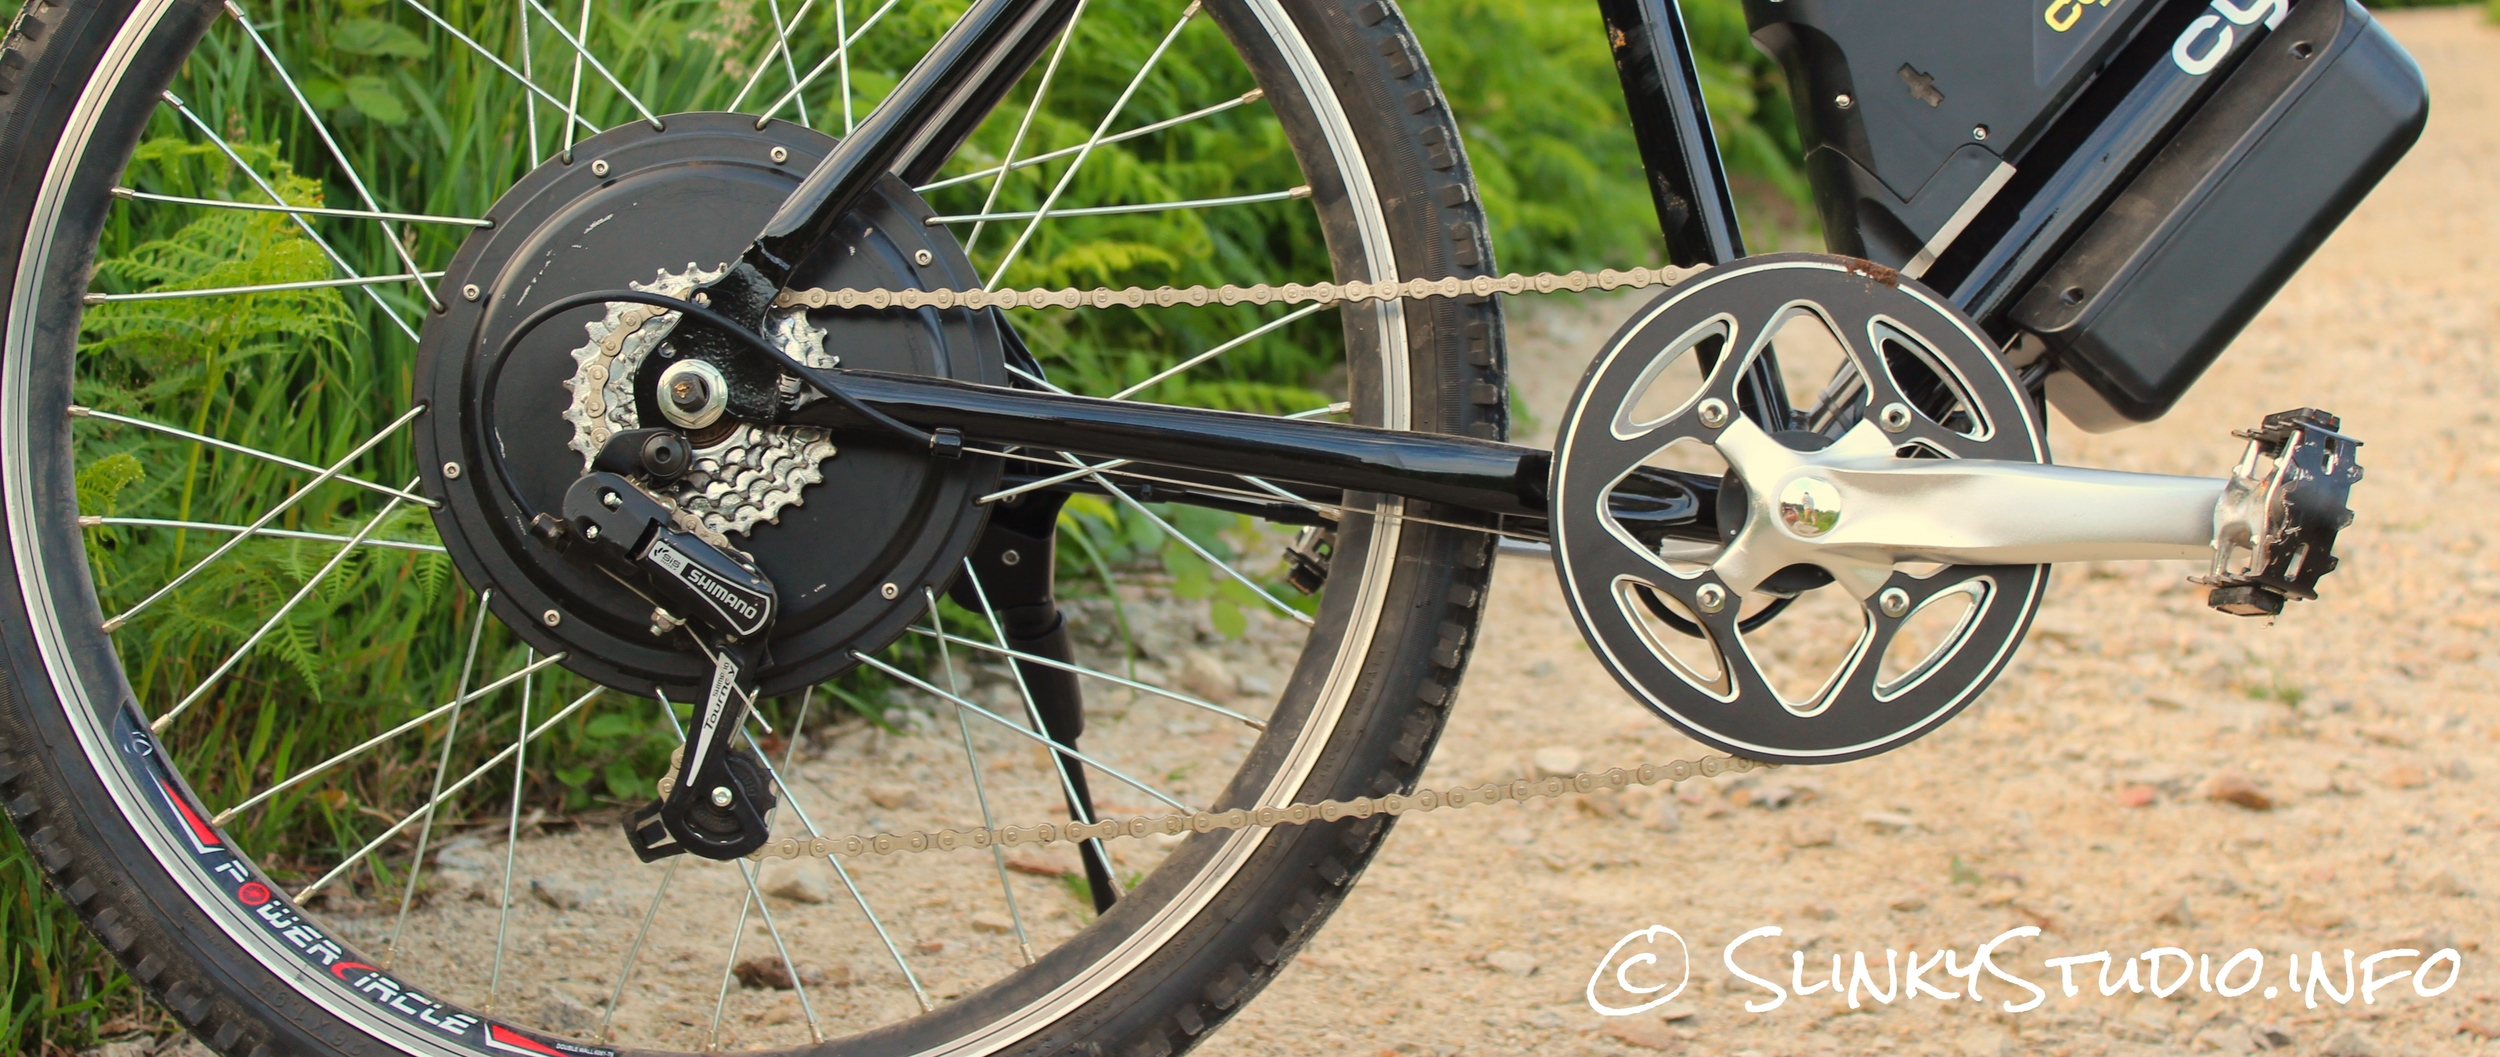 Cyclotricity Revolver 500W eBike Motor Chainset